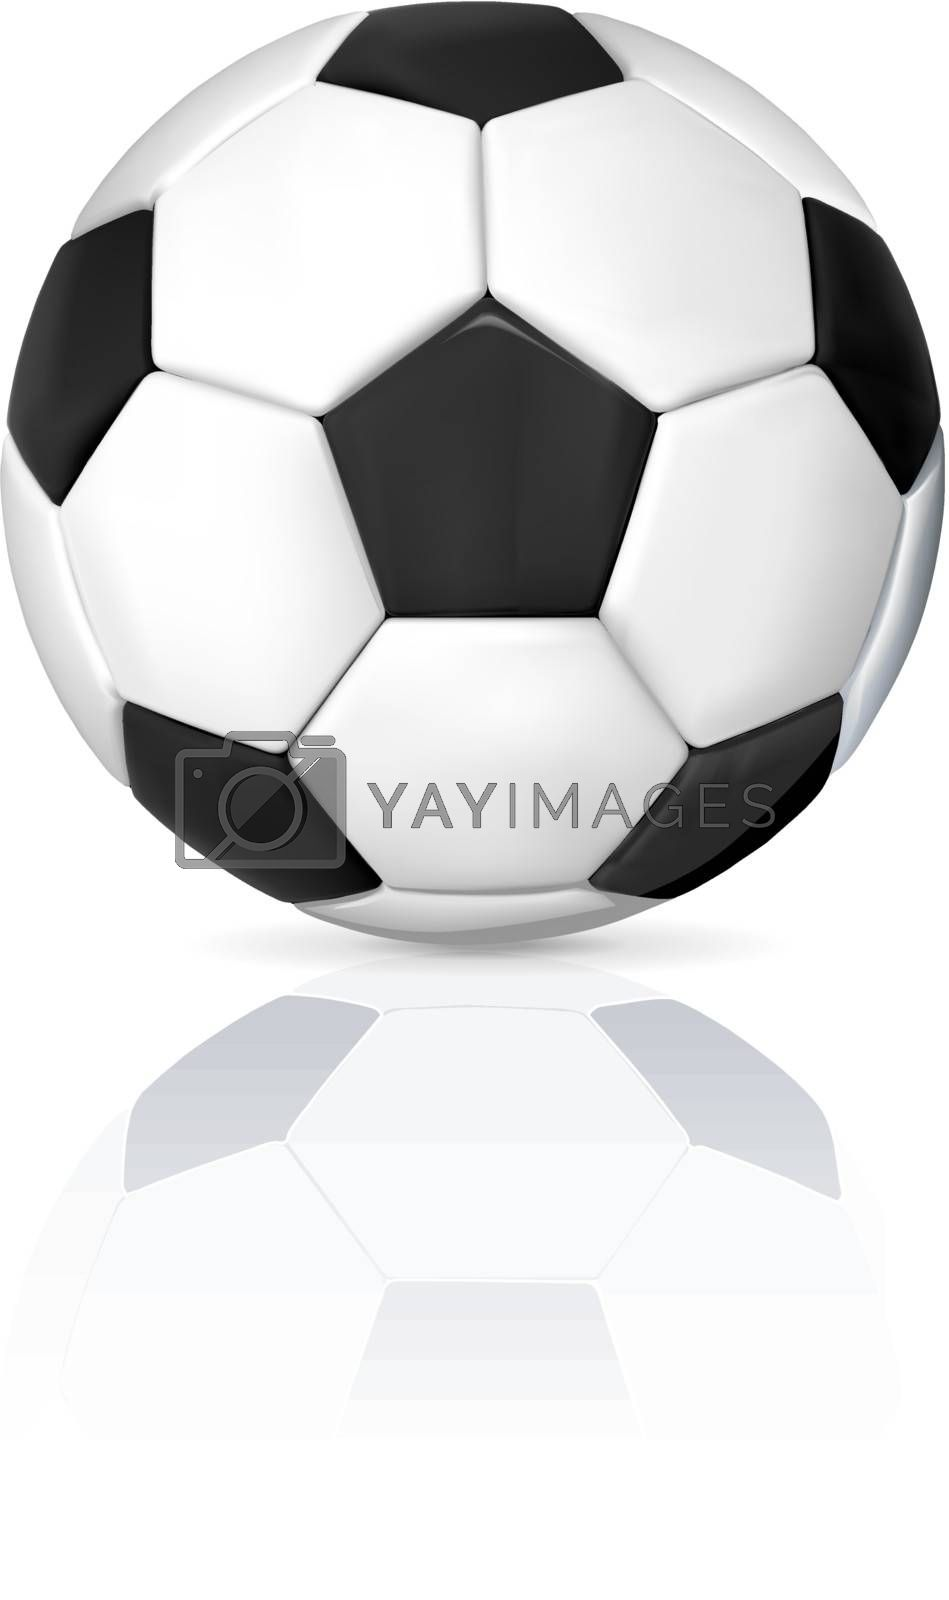 An isolated image of a leather soccer ball with shadow and reflection